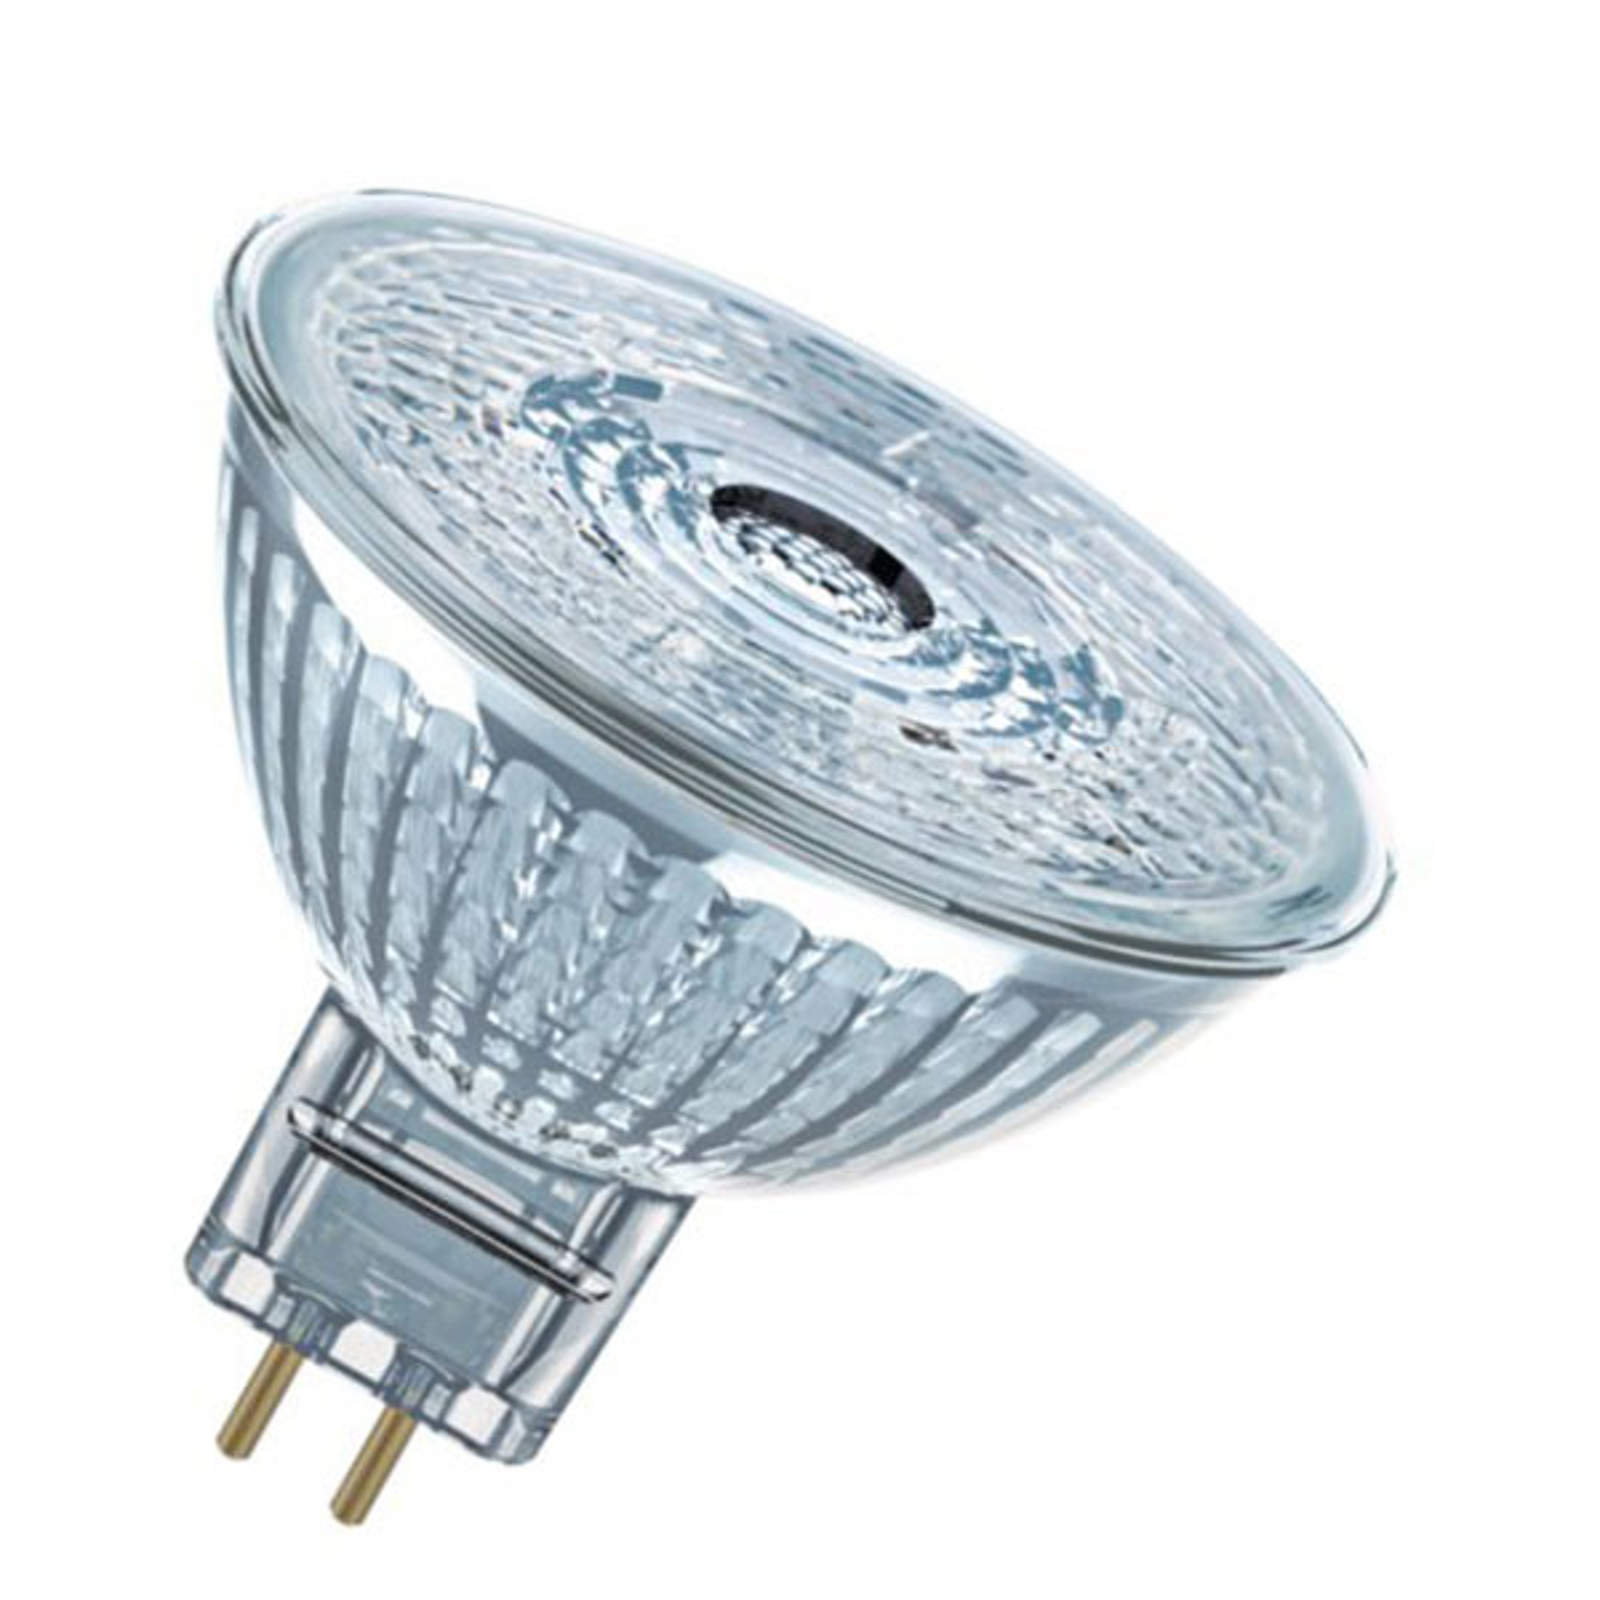 OSRAM LED-glassreflektor Star GU5,3 2,6 W 2 700 K